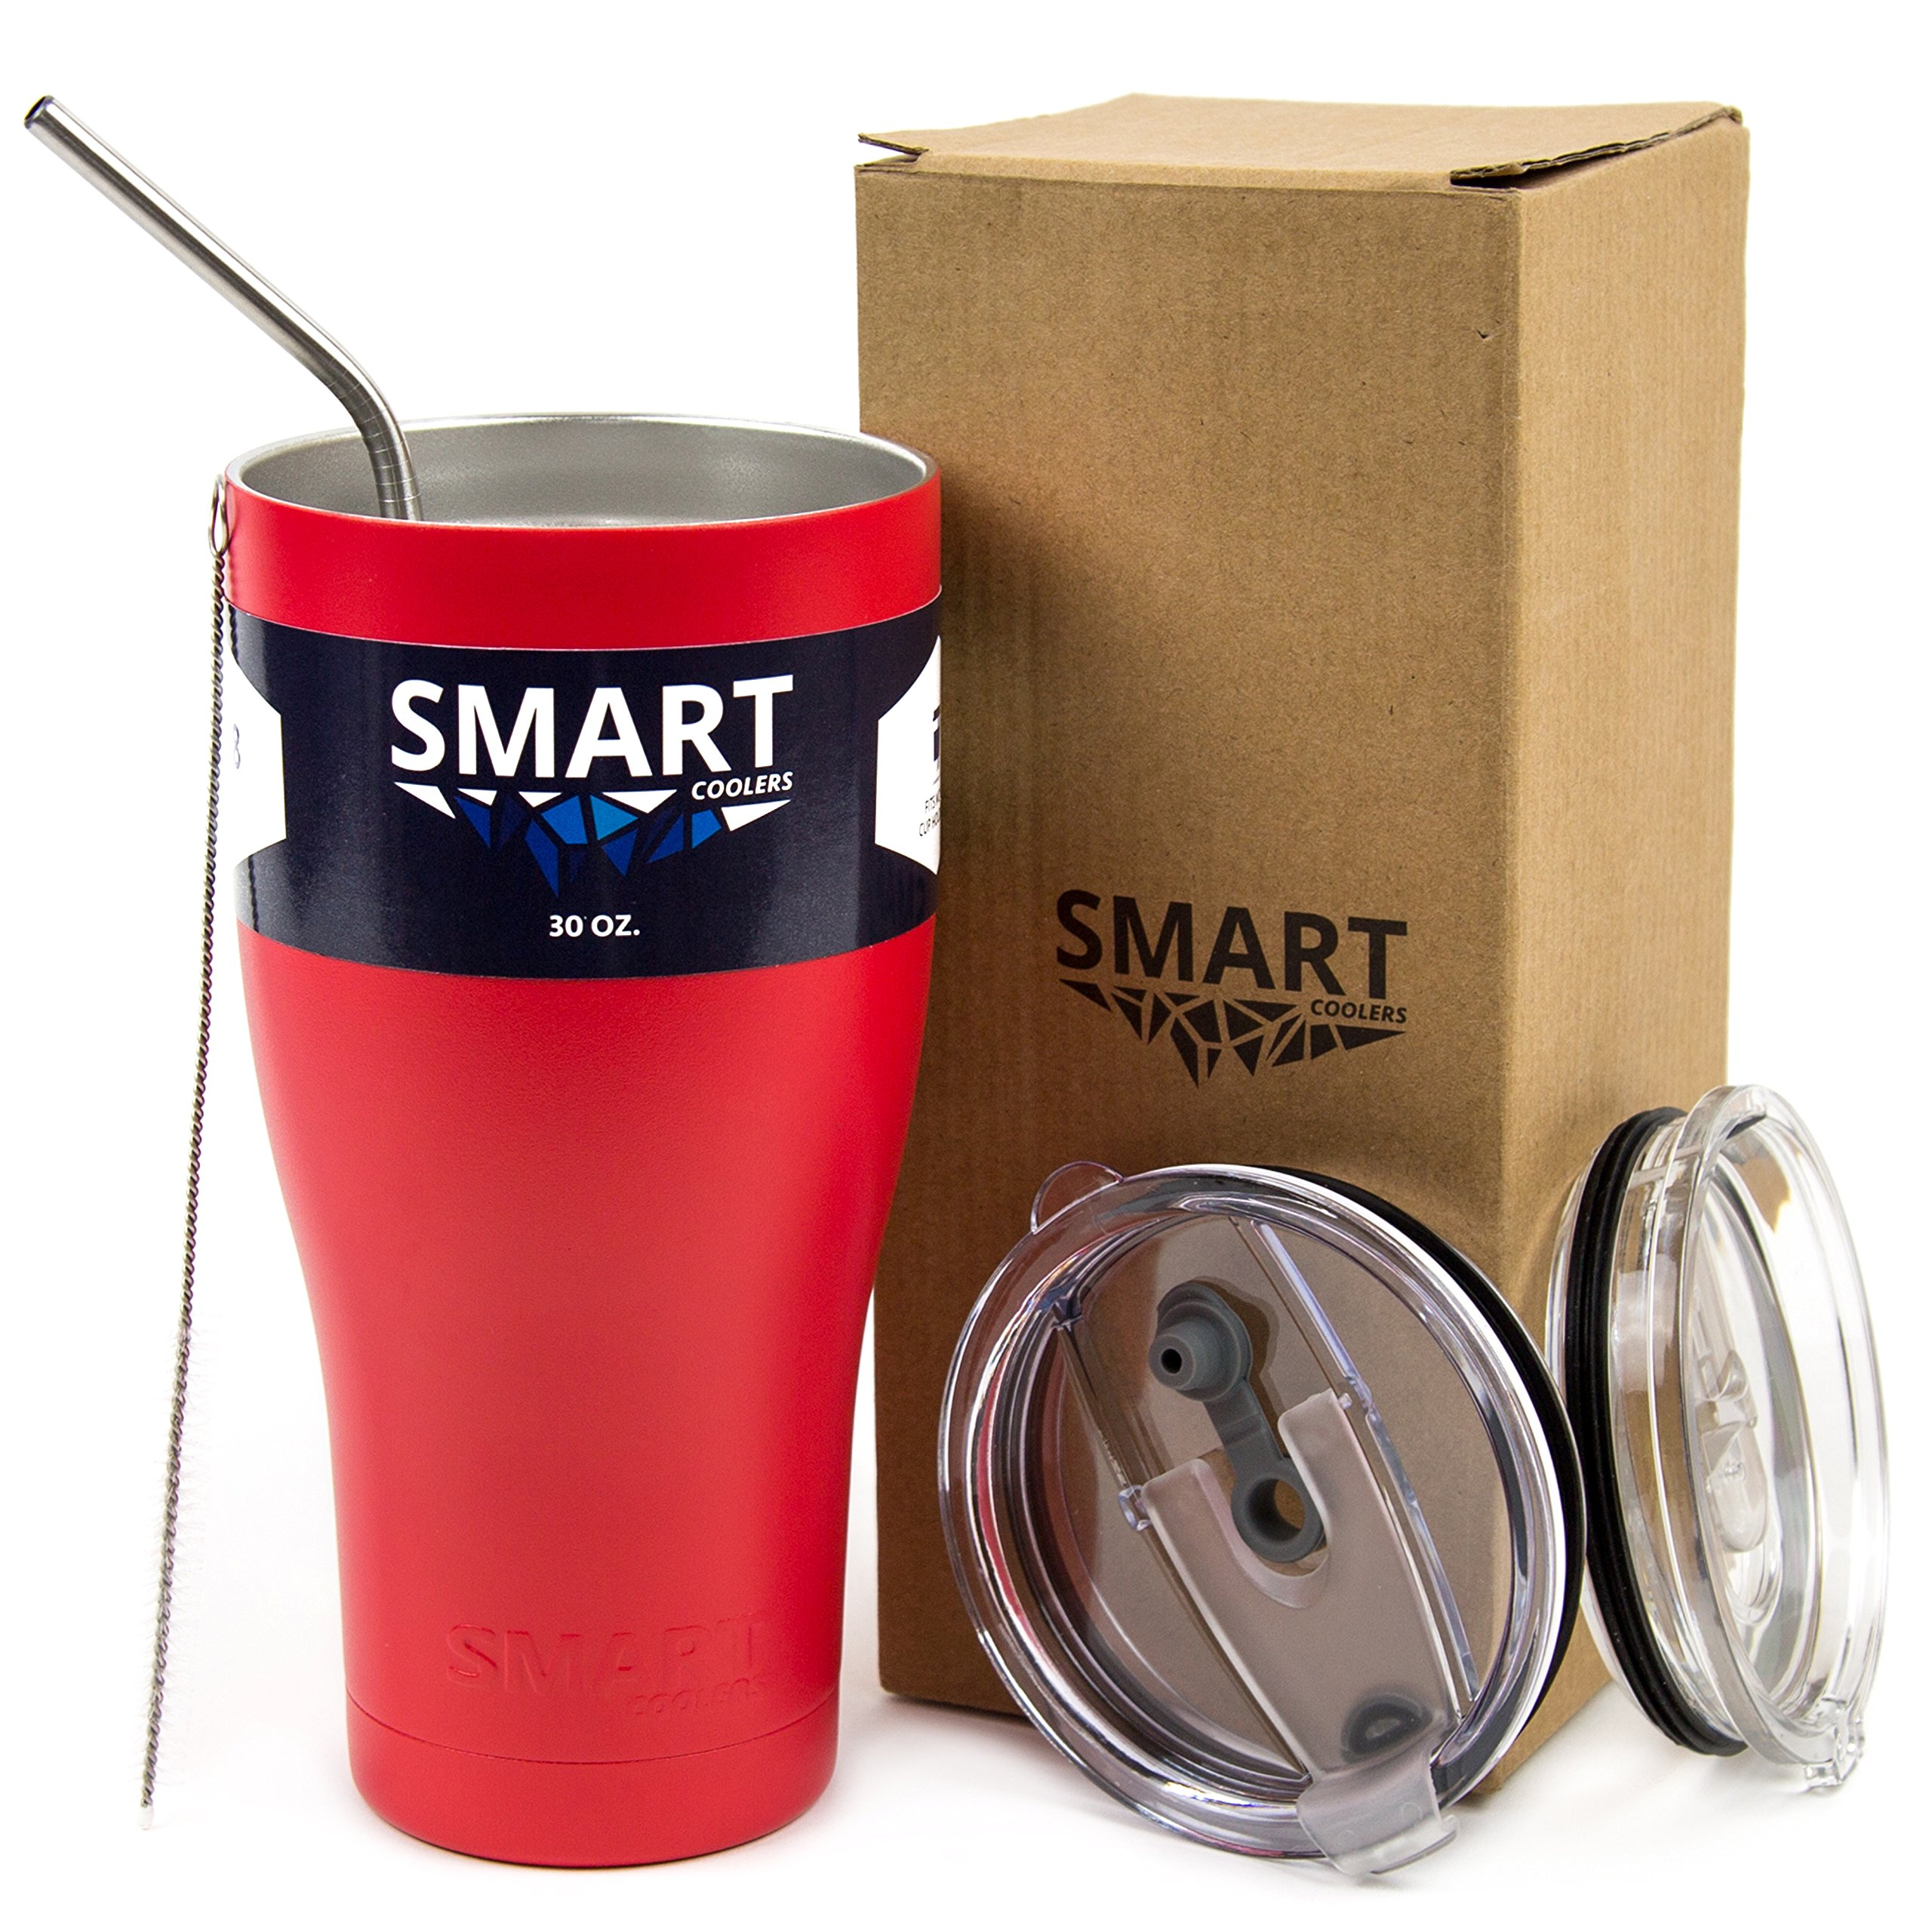 Tumbler 30 Oz Color - Smart Coolers - Ultra-Tough Double Wall Stainless Steel Tumbler Cup - Premium Insulated Mug - Keep Coffee - Compare to Yeti - Powder Coated - 2 Lids + Straw + Gift Box - Ruby Red